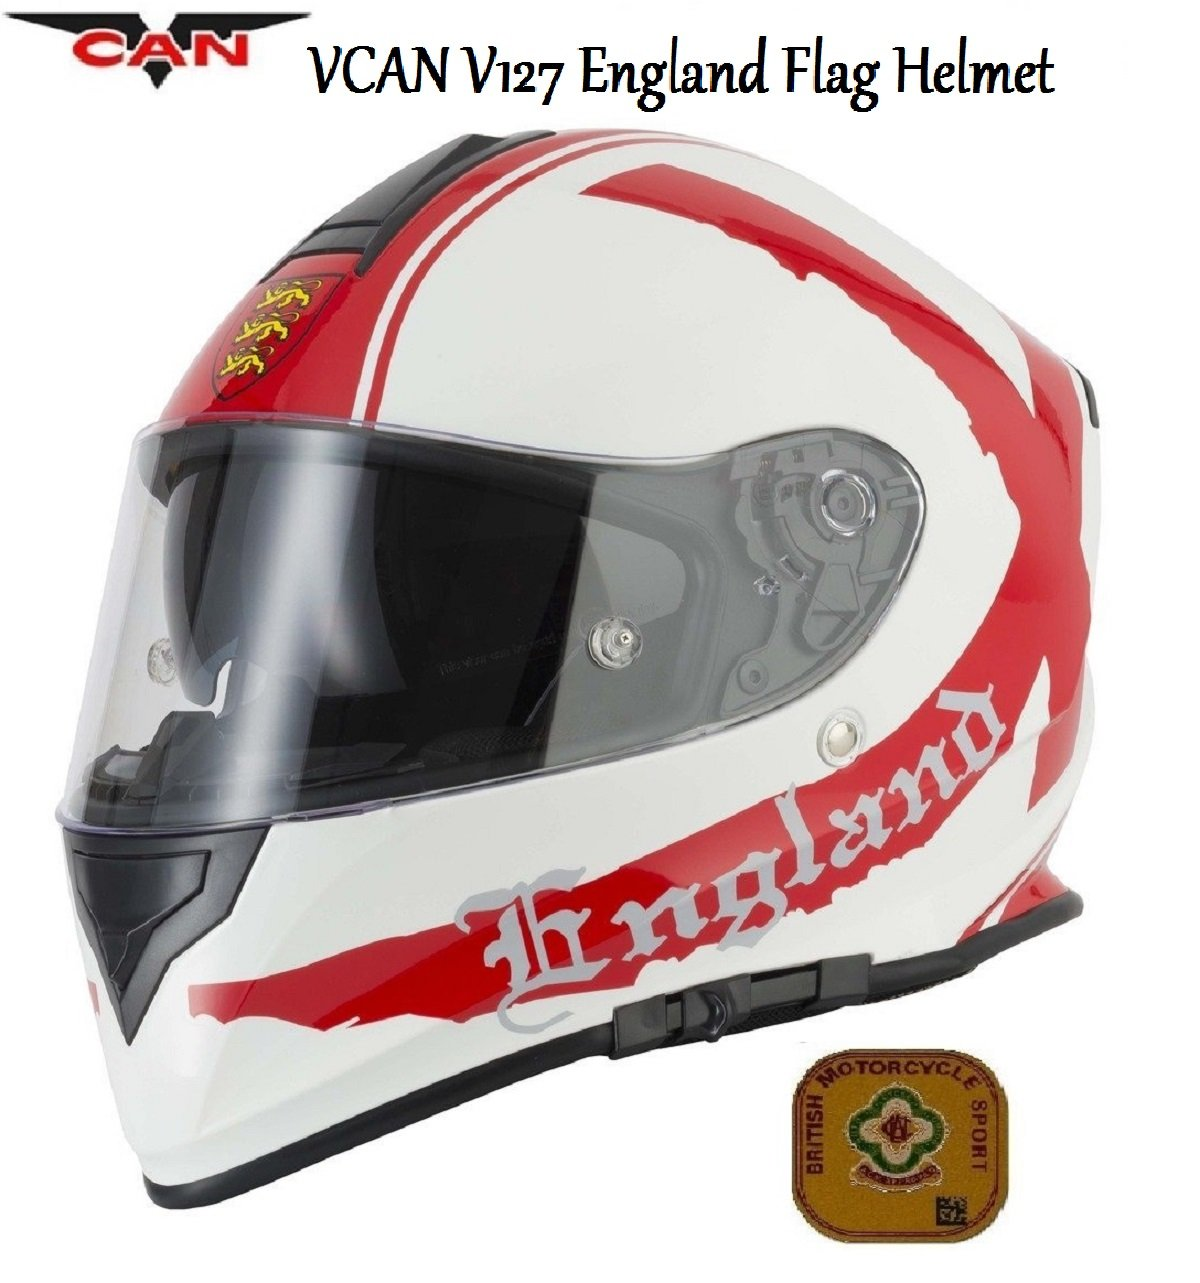 MOTORBIKE VCAN V127 ENGLAND FLAG HELMET Motorcycle Full Face Graphic ECE ACU Approved Sports Touring Helmet /& Grid Balaclava